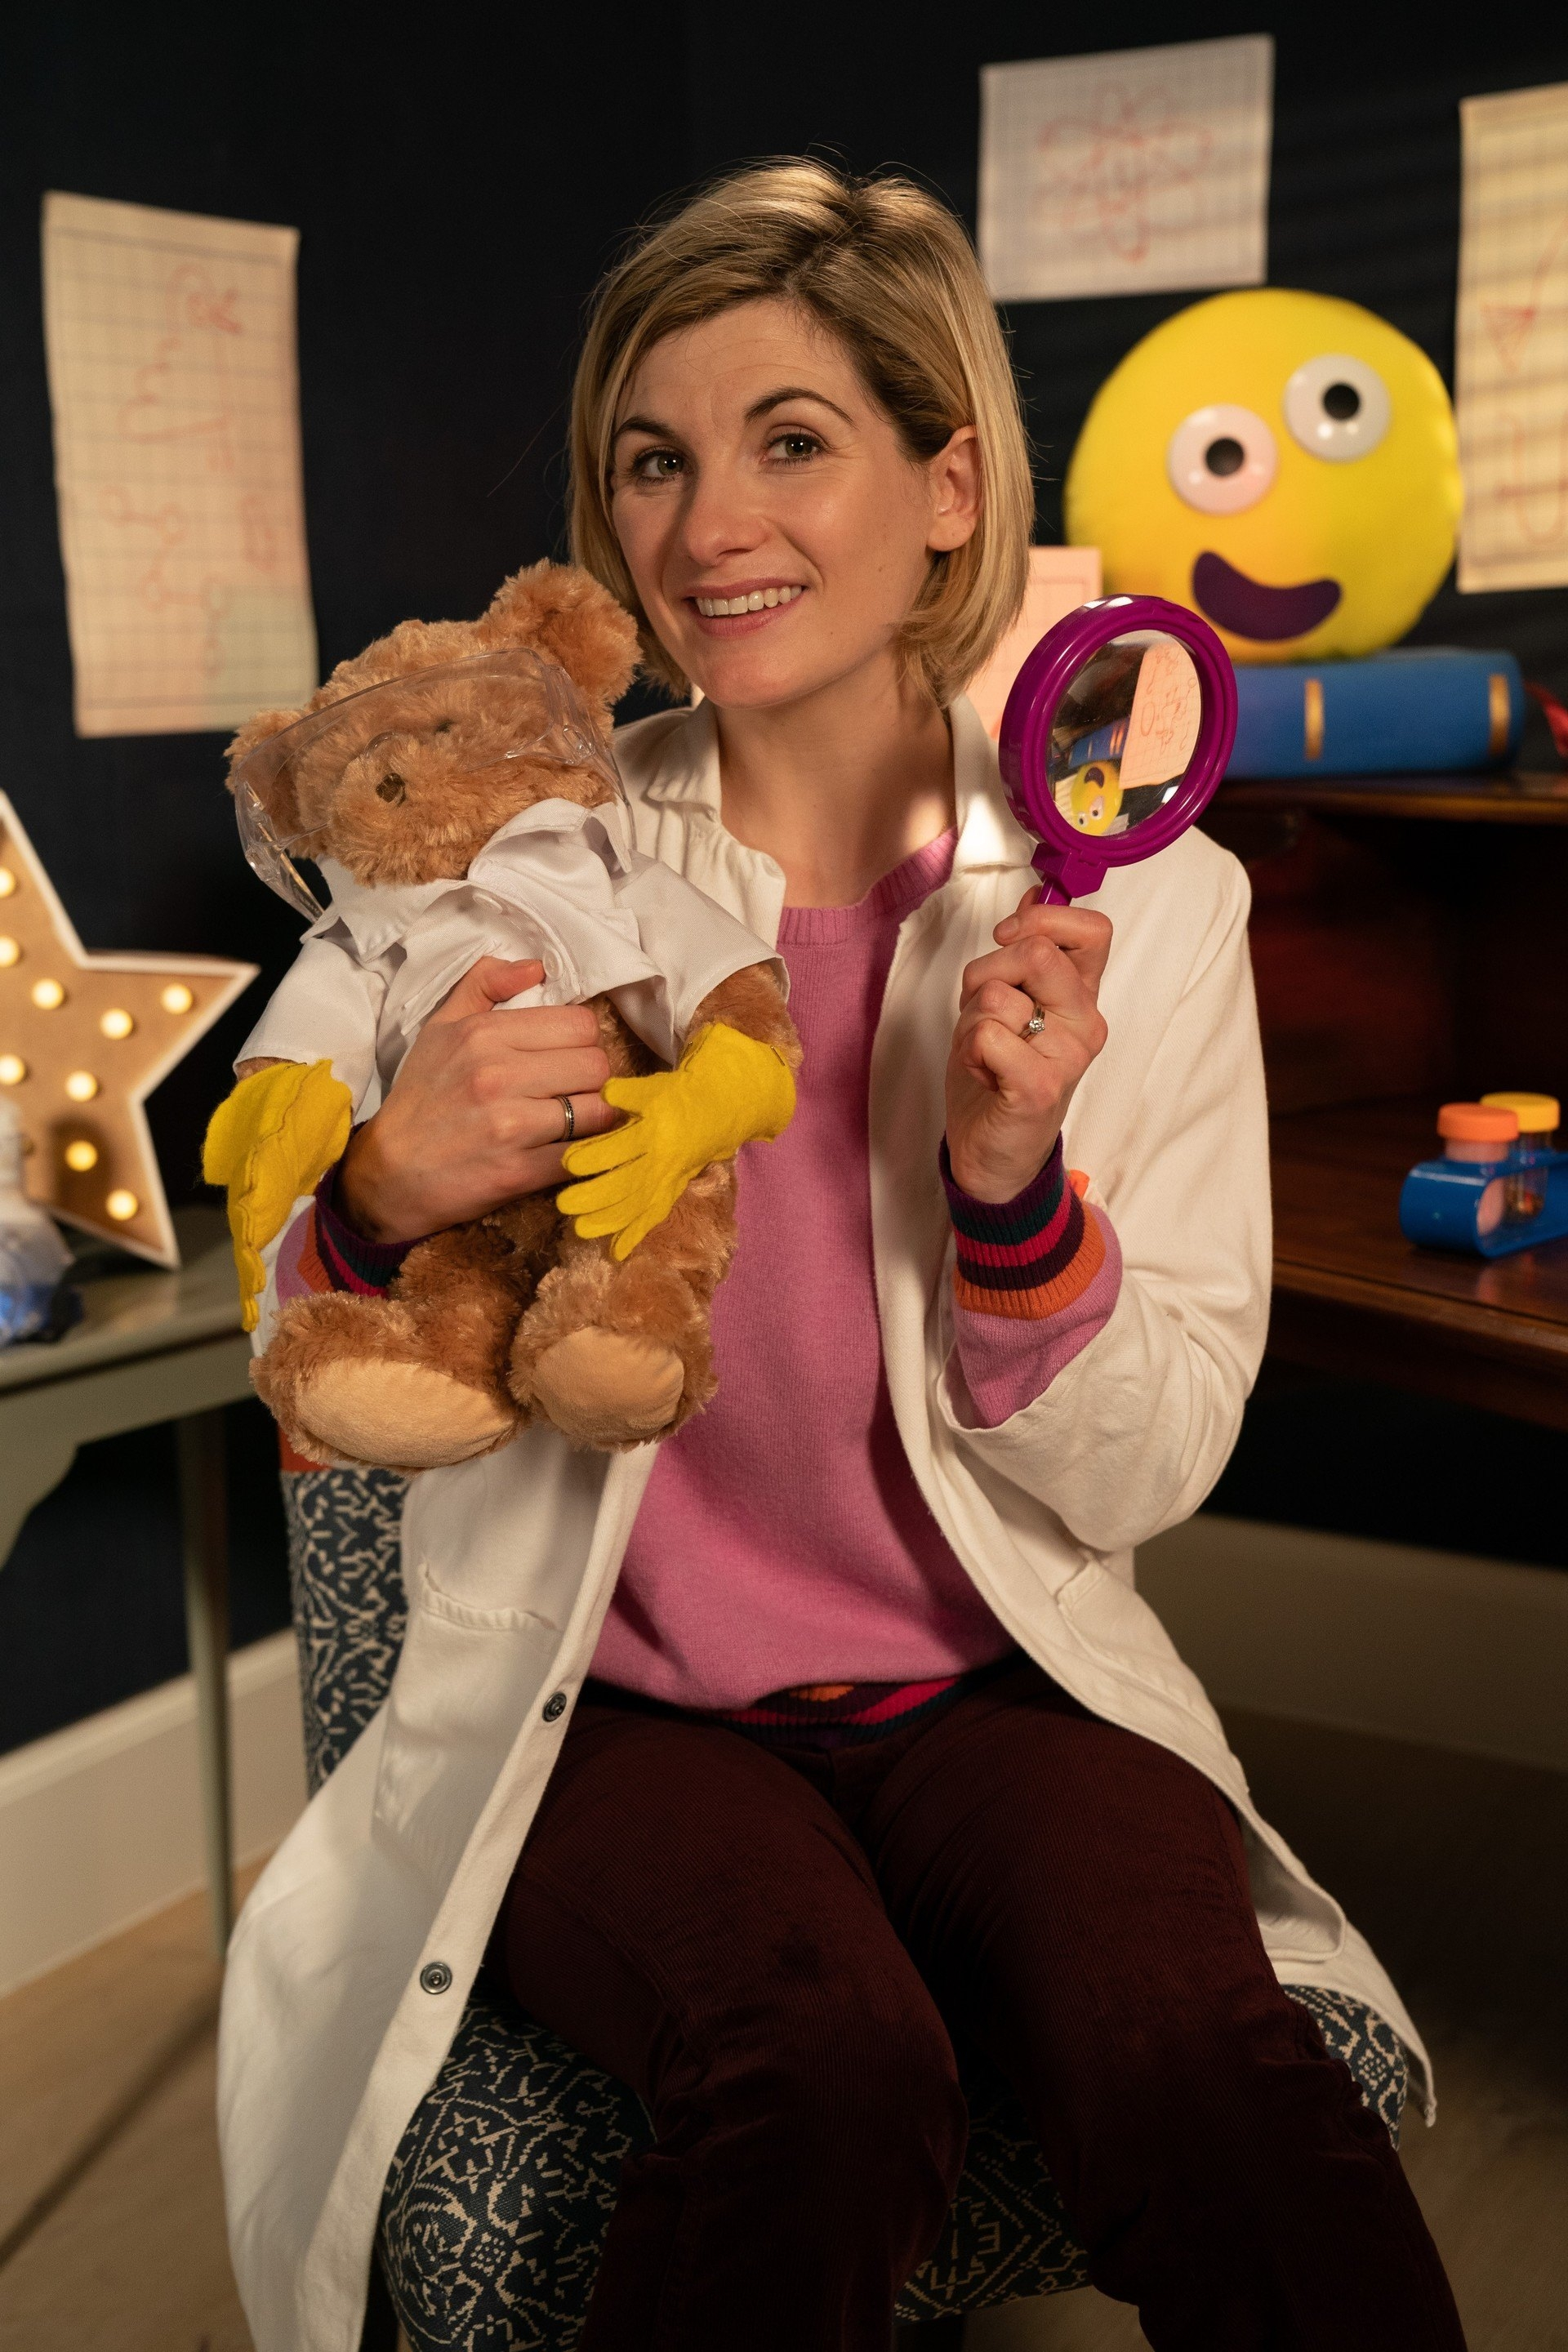 Jodie Whittaker reads Ada Twist, Scientist in Bedtime Stories (7 Dec 2018) (Credit: BBC)